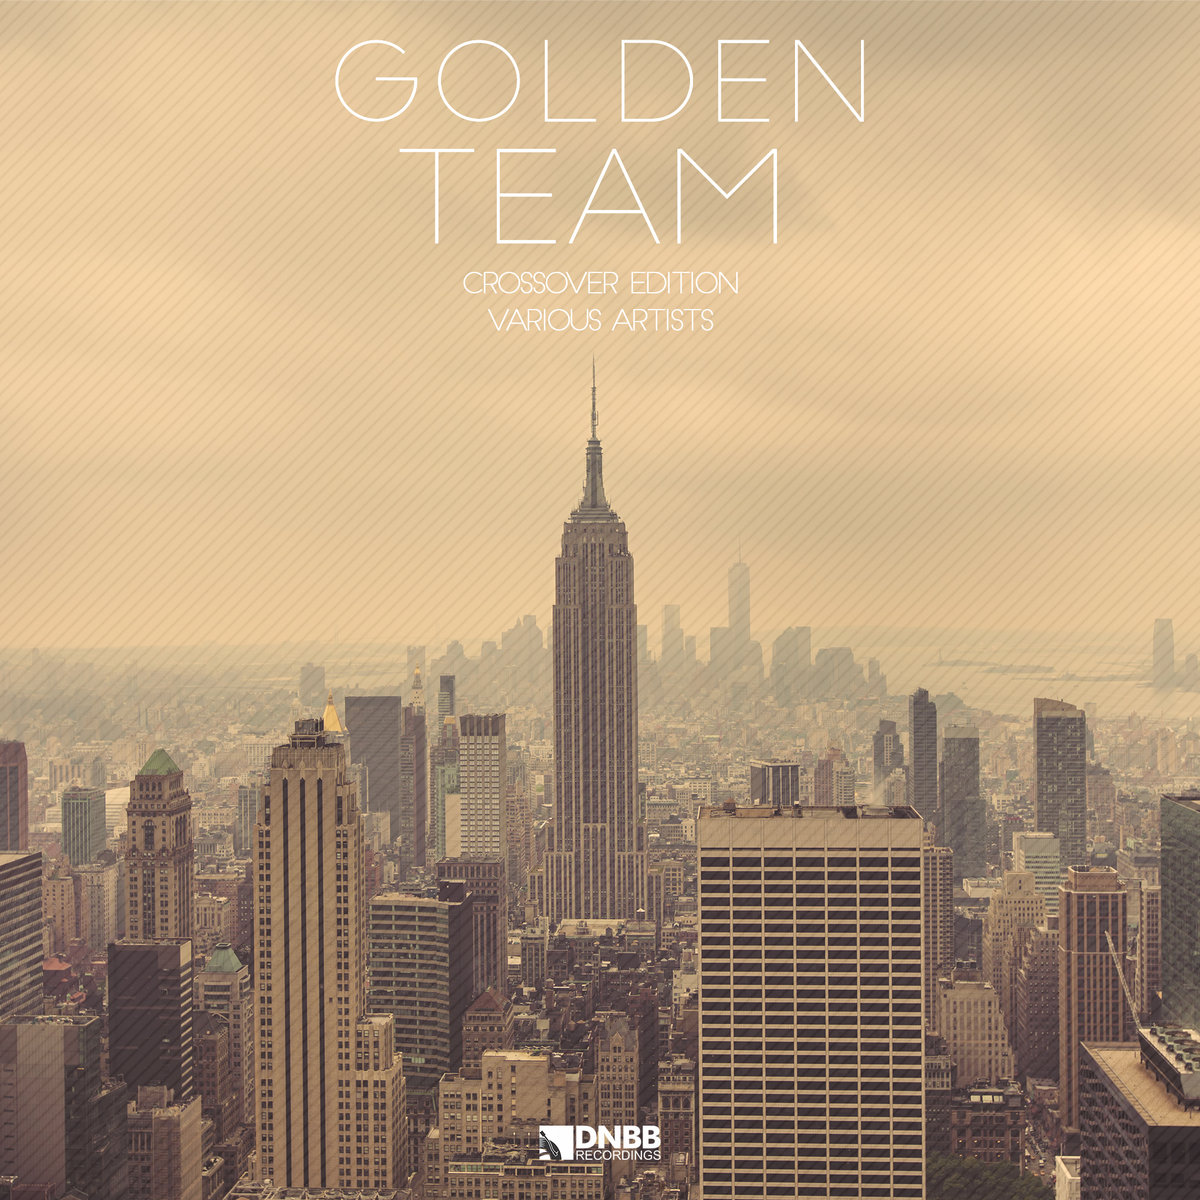 True romance dnbb recordings from golden team vol 3 crossover edition by various artists malvernweather Gallery